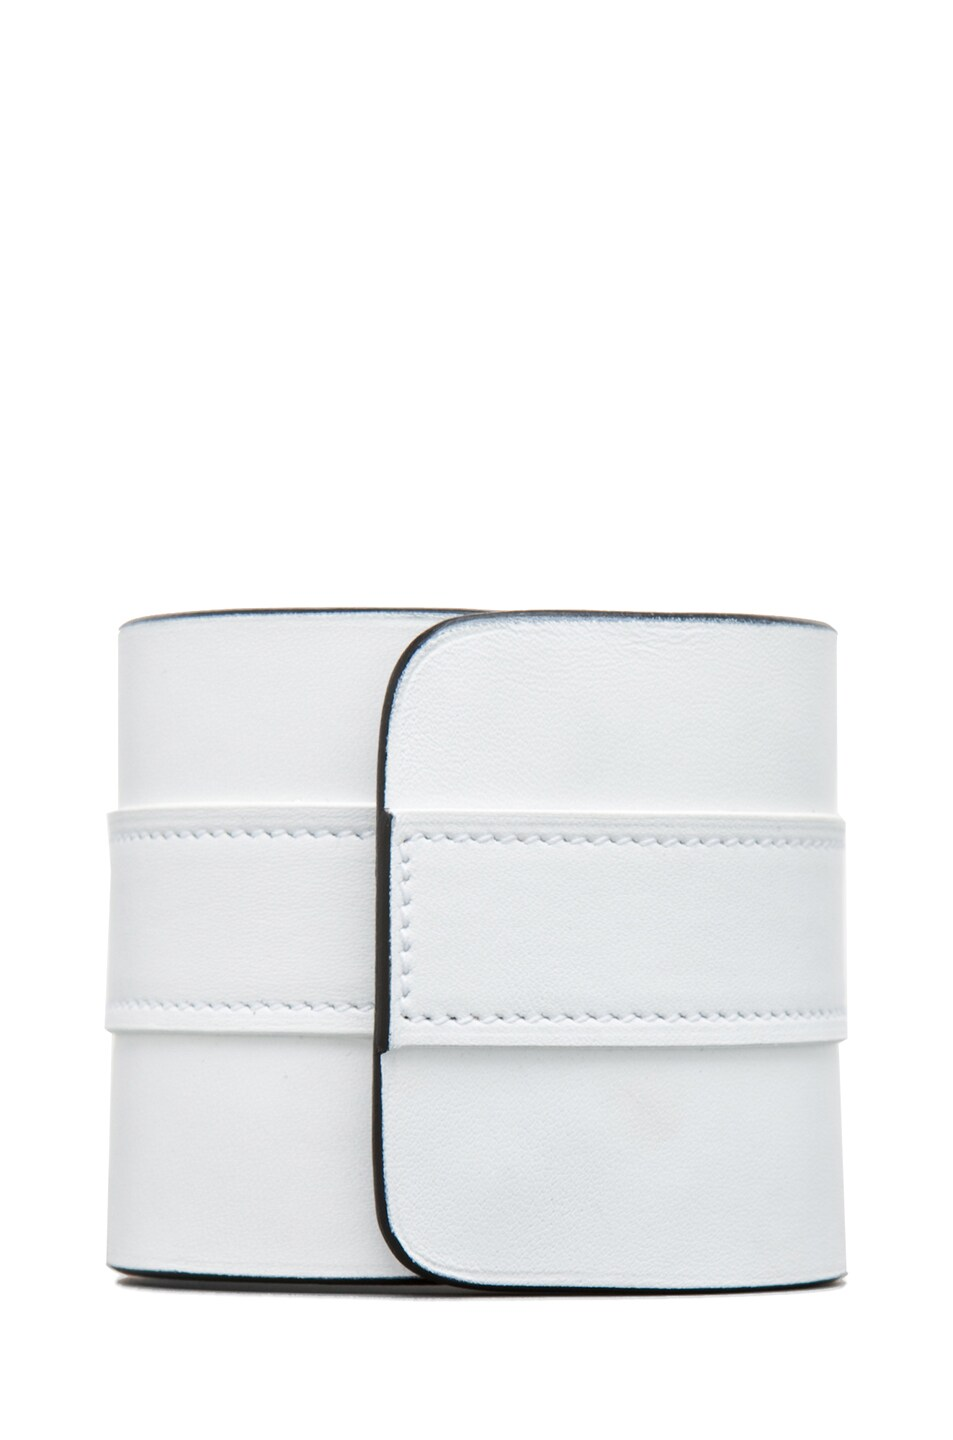 Image 3 of GIVENCHY Obsedia Large Cuff in White/Black